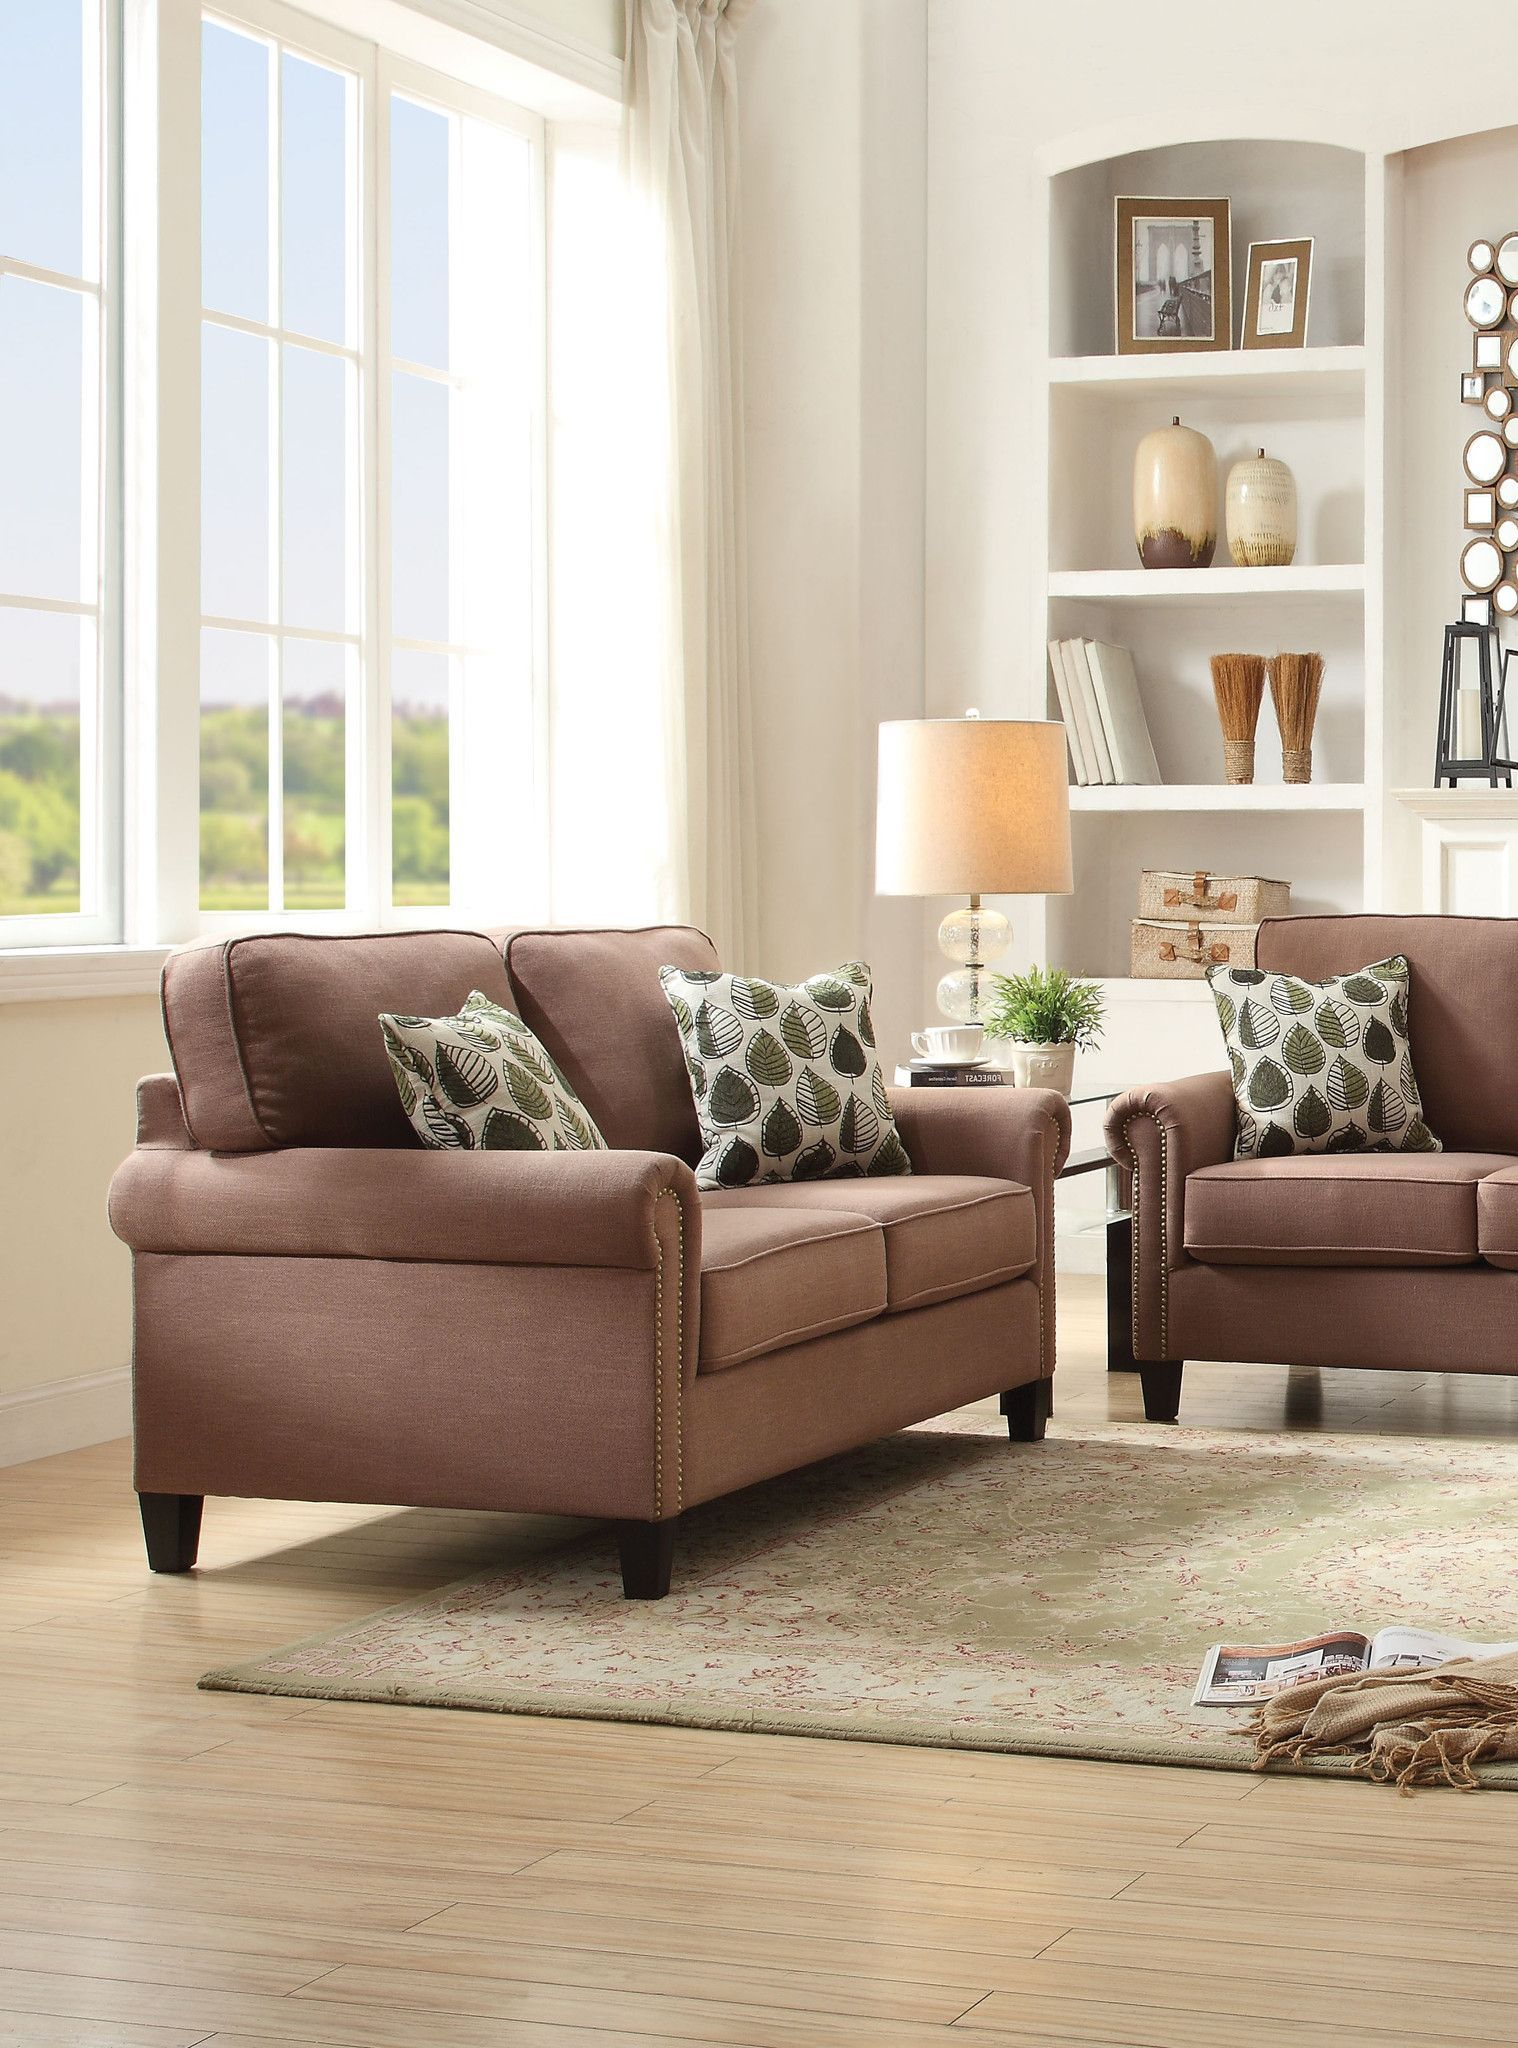 Felise Loveseat W/2 Pillows 52591